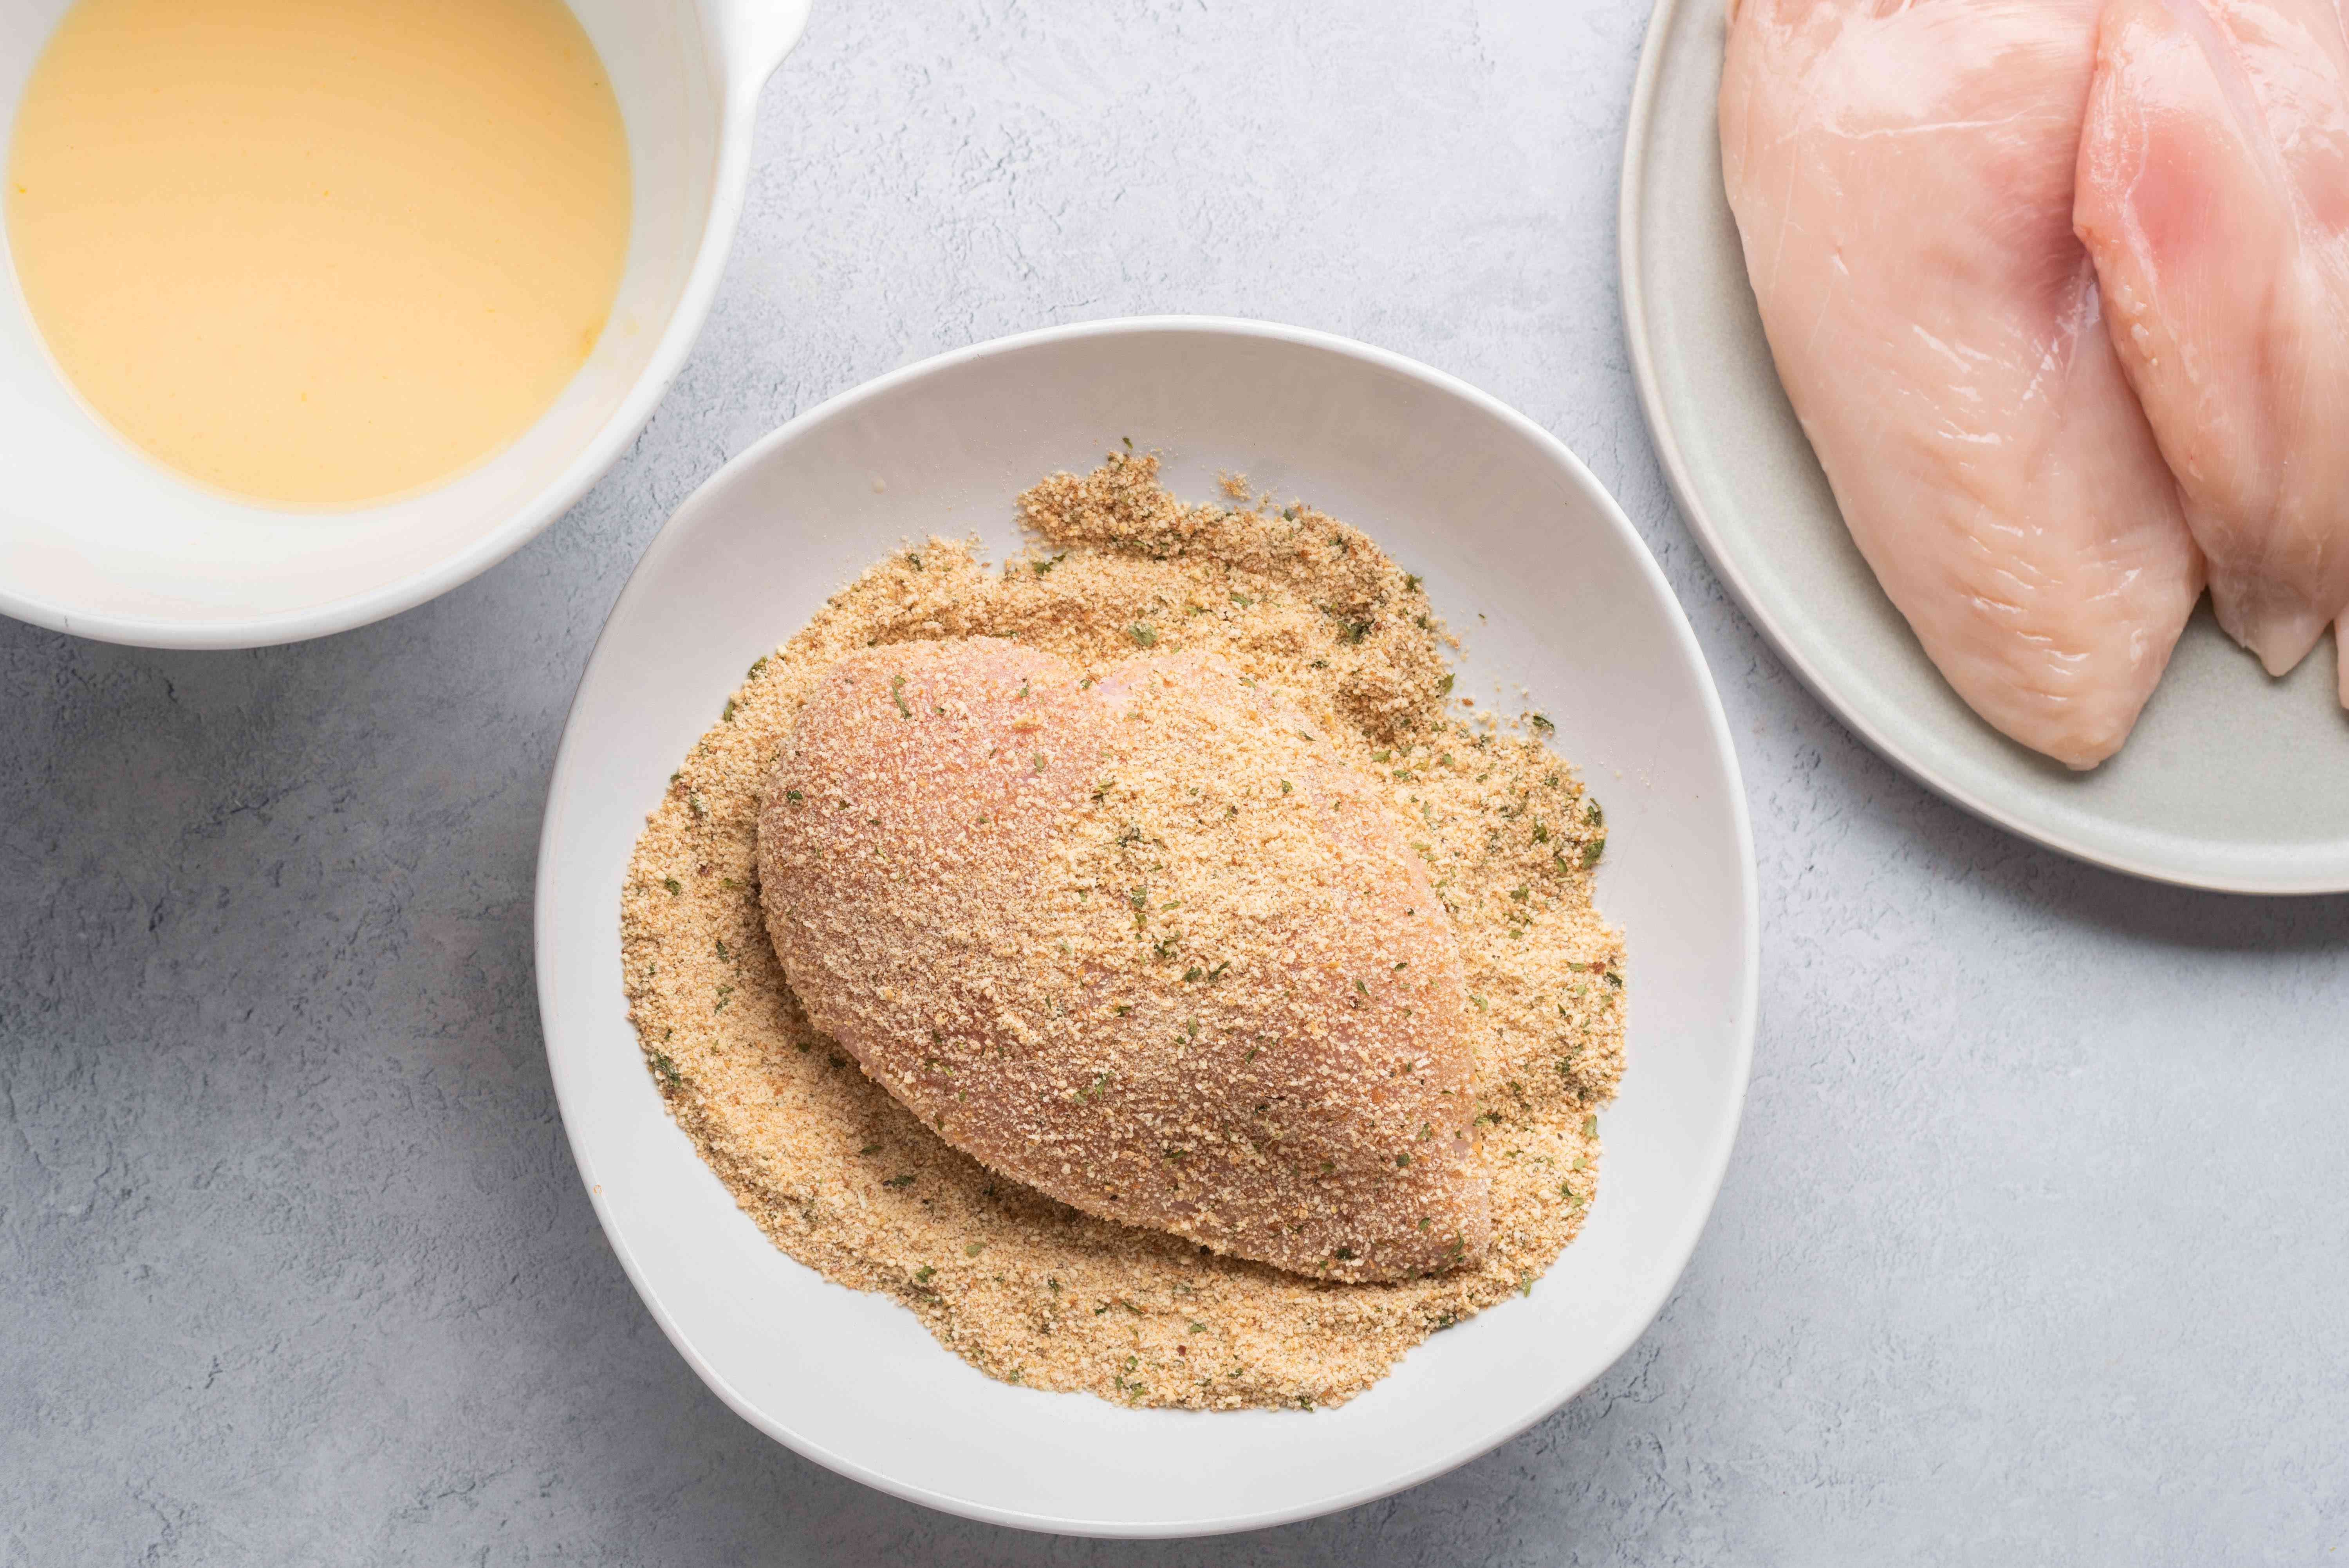 Dip the flattened chicken breasts in the milk and egg mixture and then in the seasoned breadcrumbs